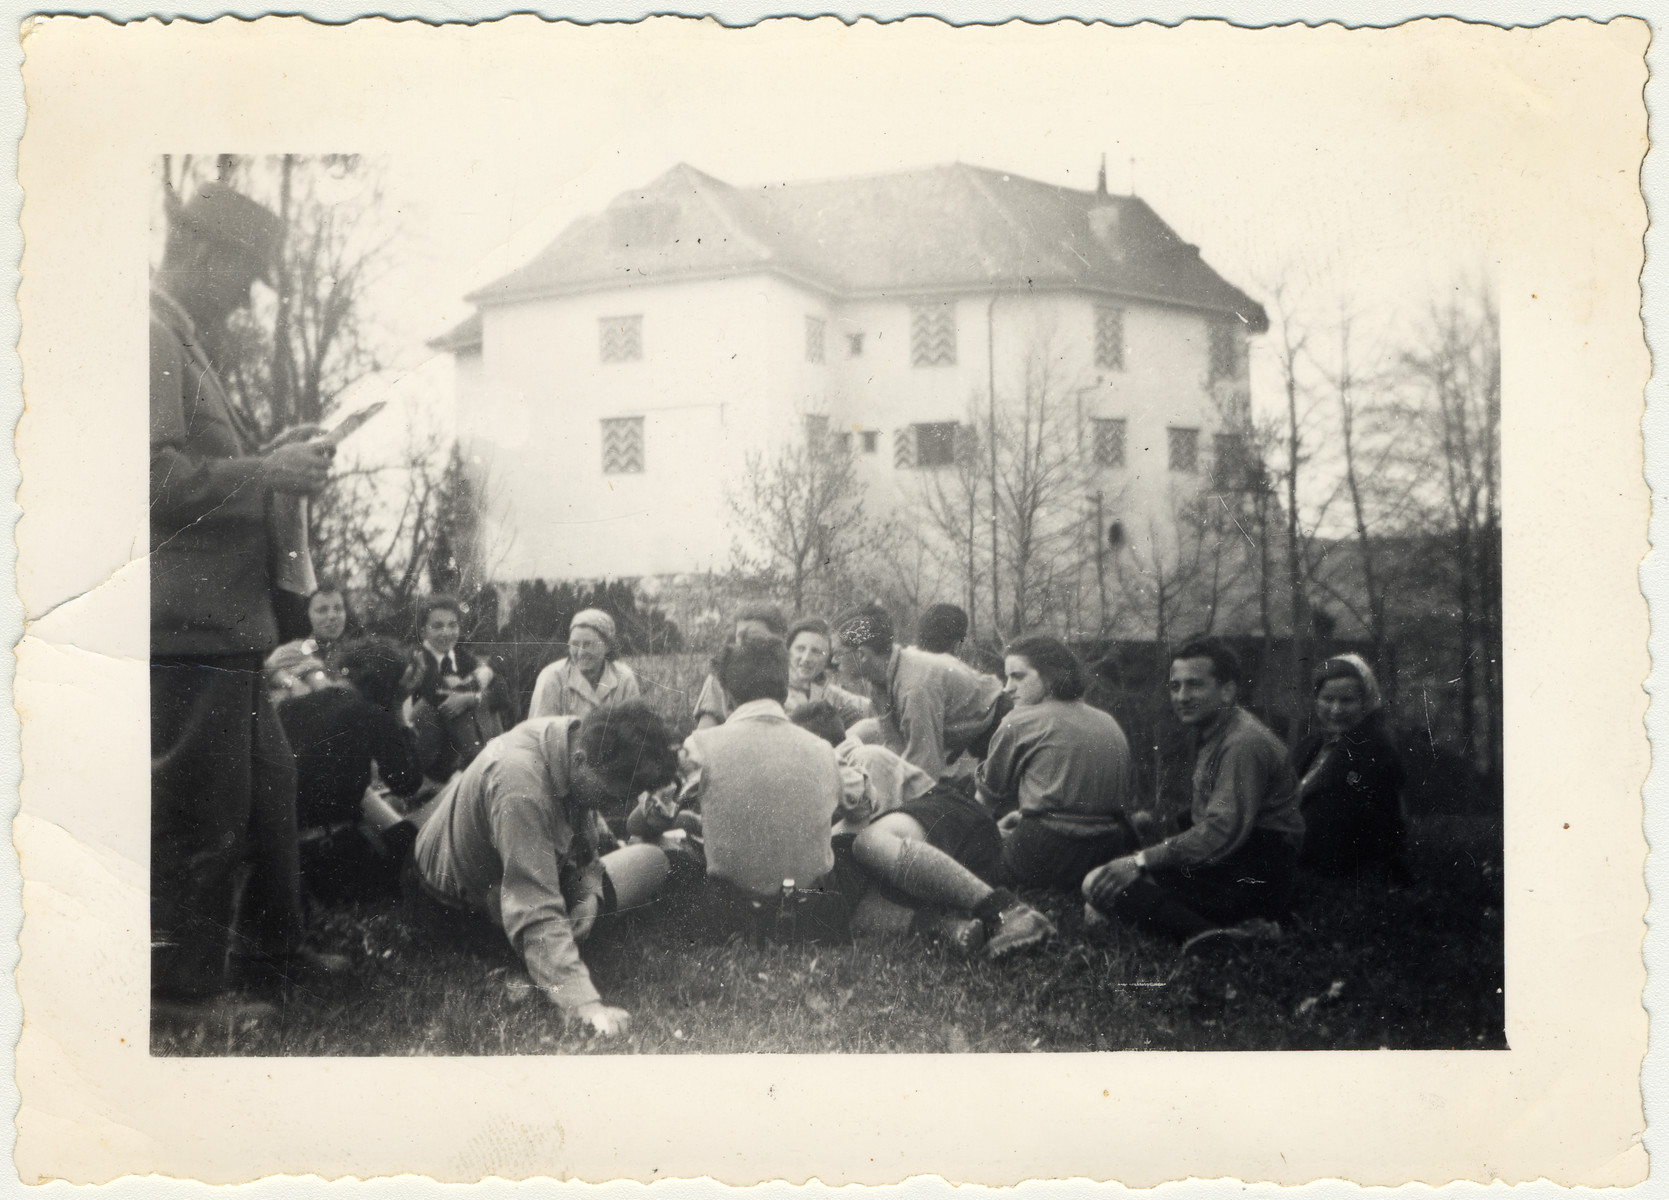 Zionist youth relax in the grass after work at Schloss von Elgg.